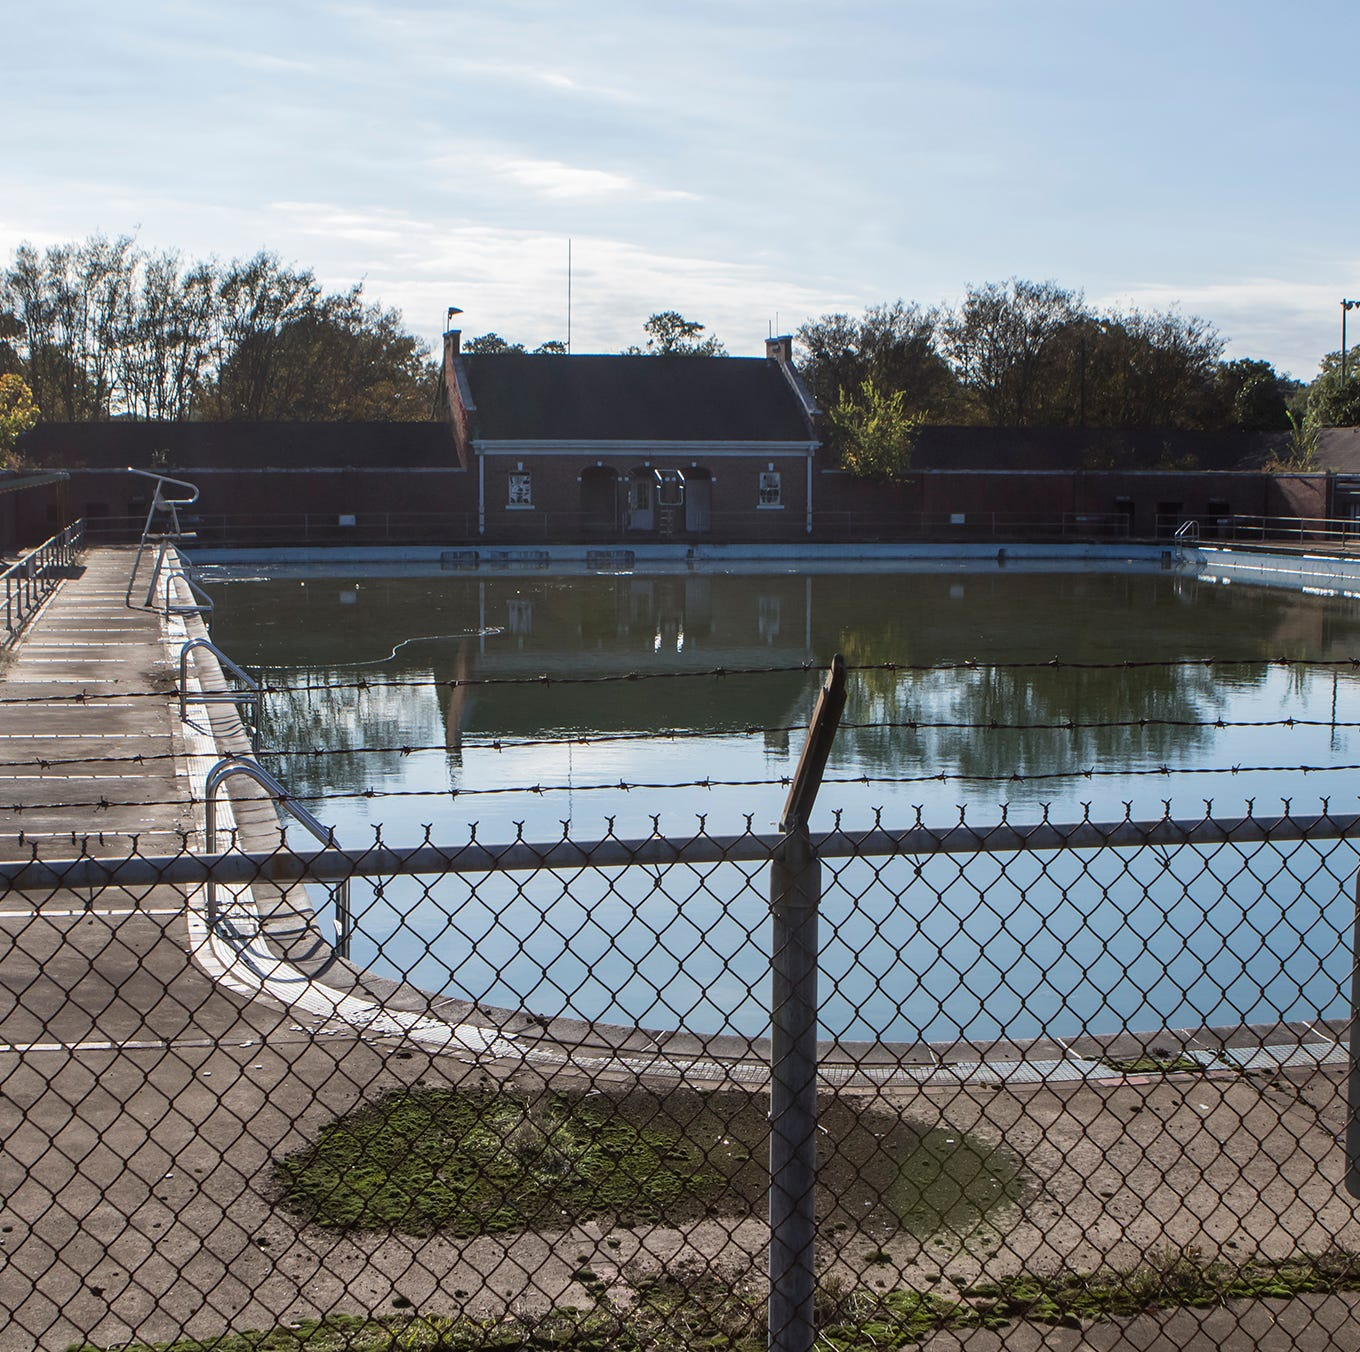 Plans for tennis courts at former Swayze pool fail; What's next?